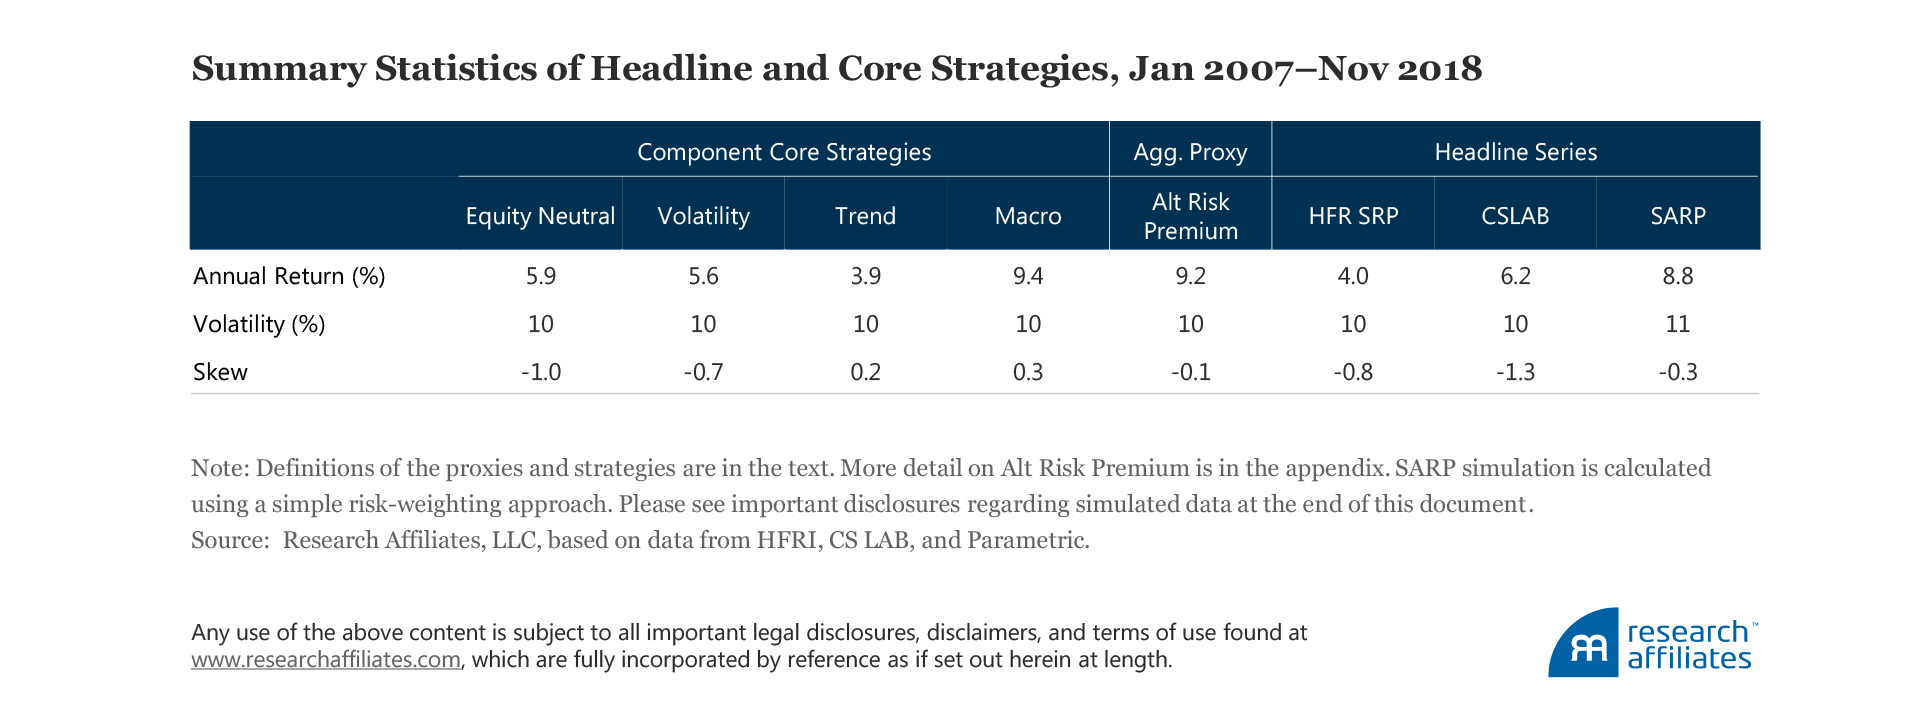 research affiliates commentary alternative risk premia crisis or